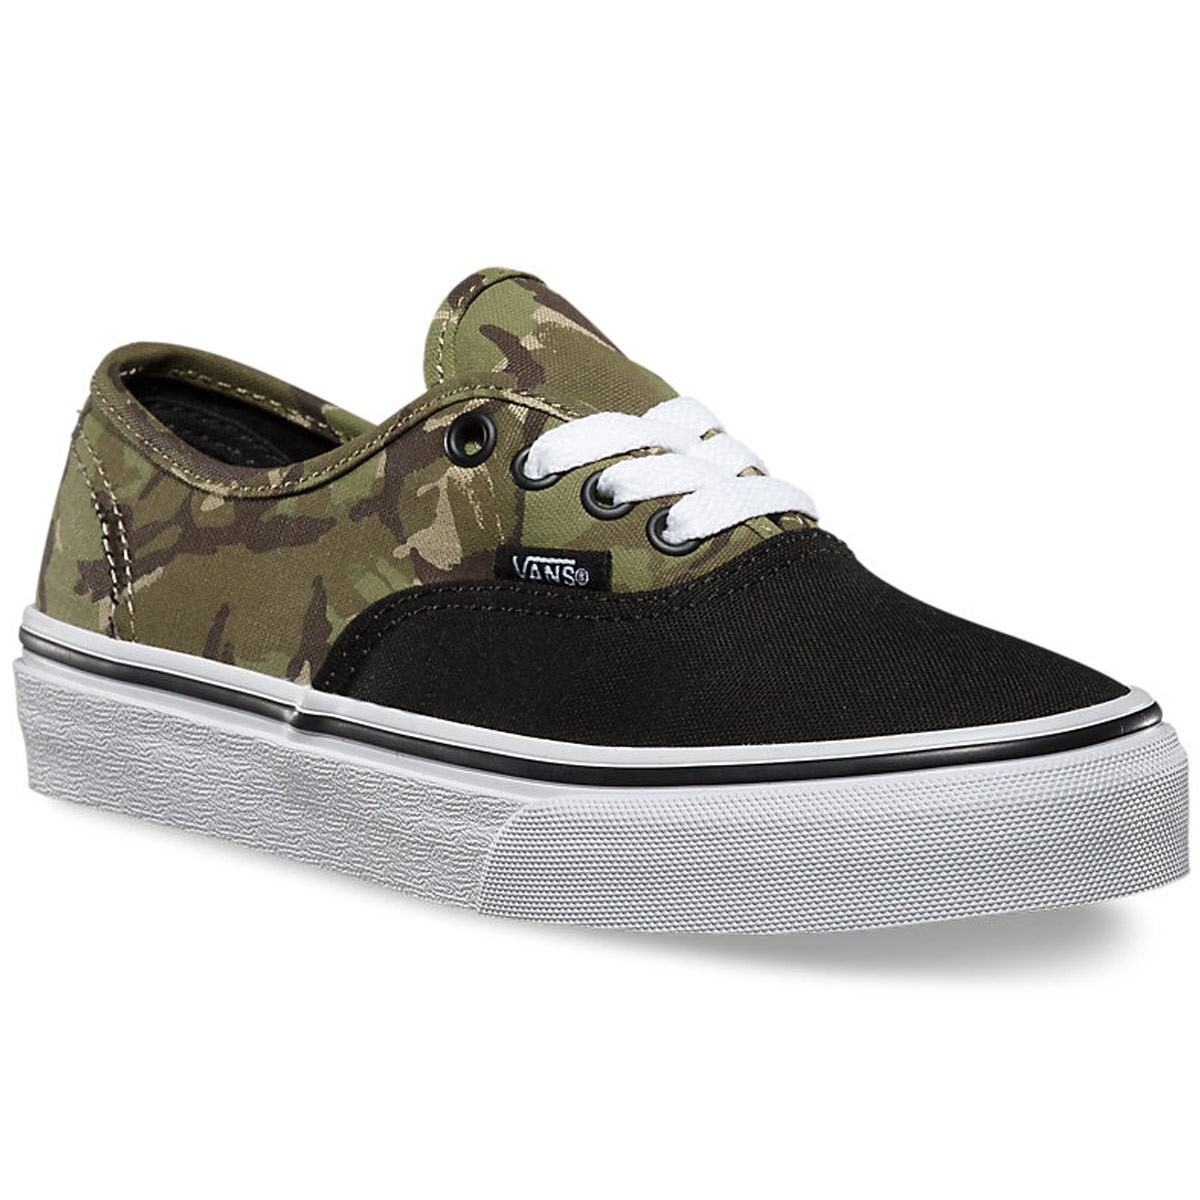 vans camo baskets nike shox femmes. Black Bedroom Furniture Sets. Home Design Ideas